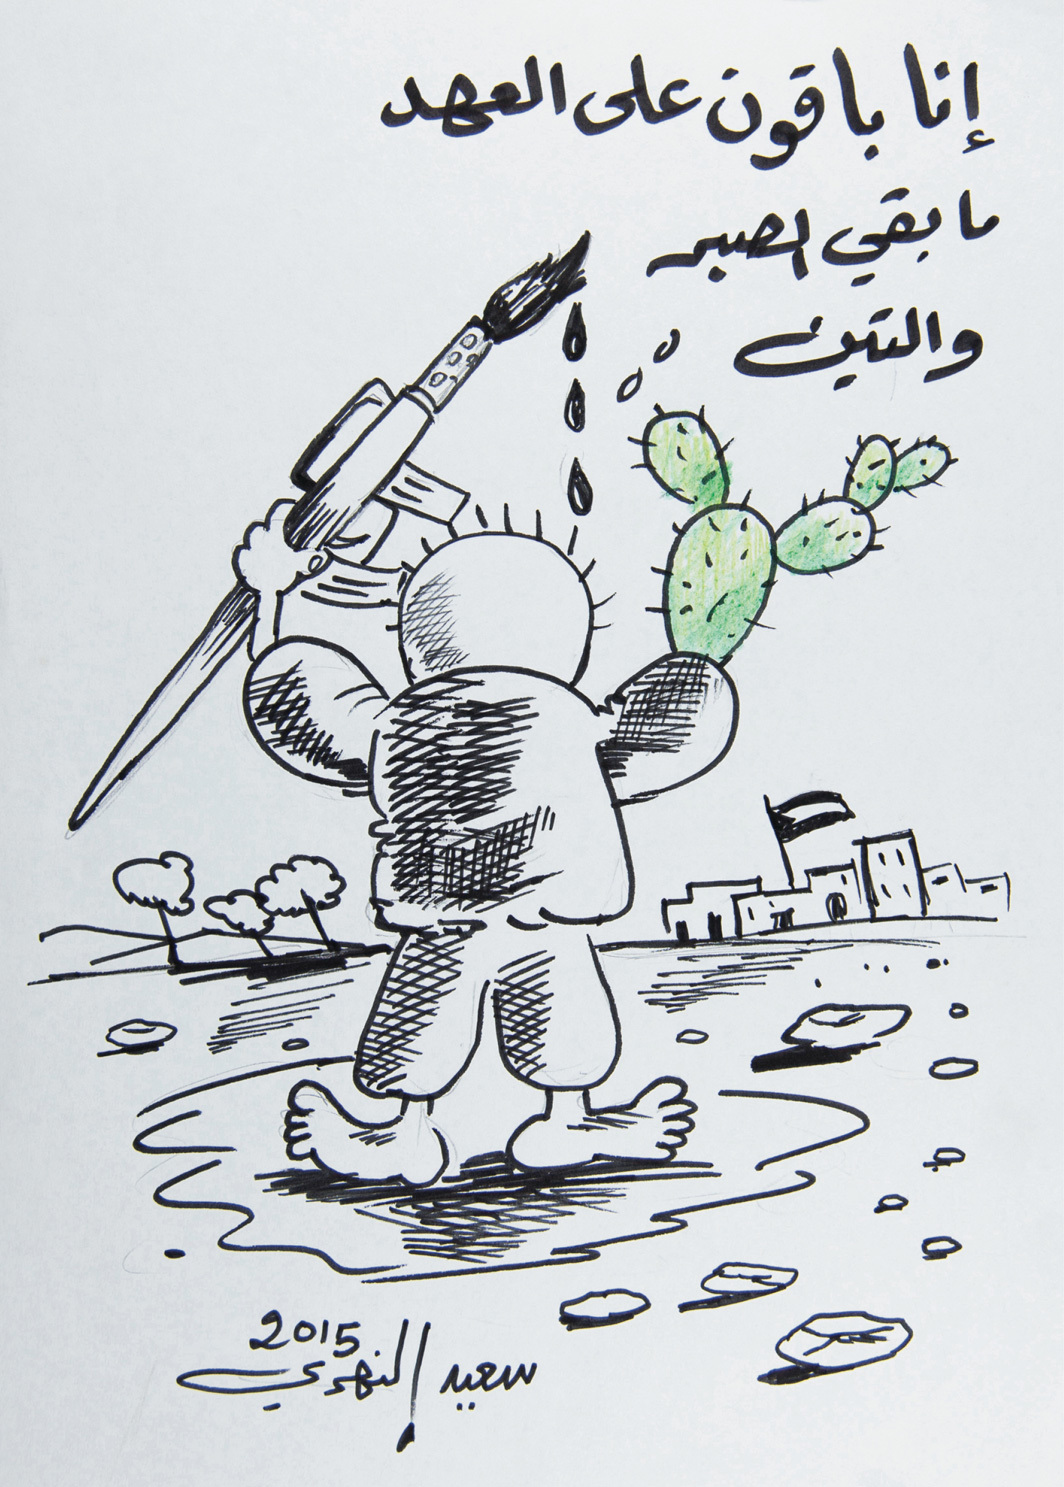 Saʿīd An-Nahry, Palestinian Resistance, 2015, felt-tip marker on paper, dimensions unknown. From the Palestinian Museum Digital Archive.